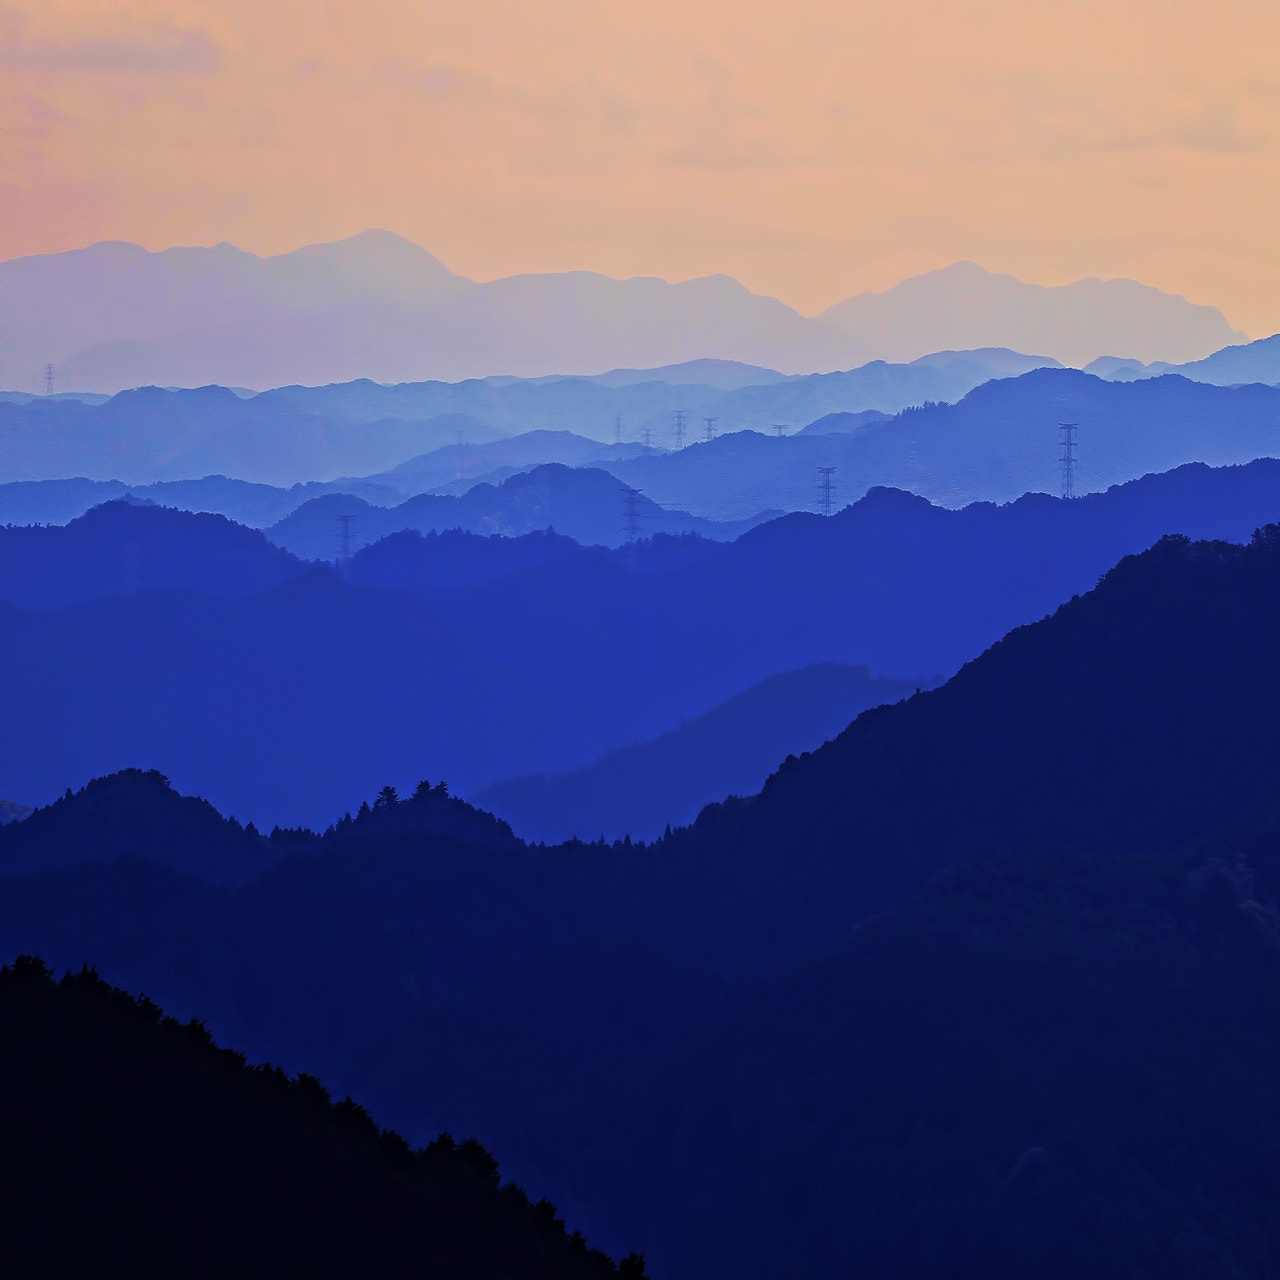 Photograph mountain over mountain by MIYAMOTO Y on 500px